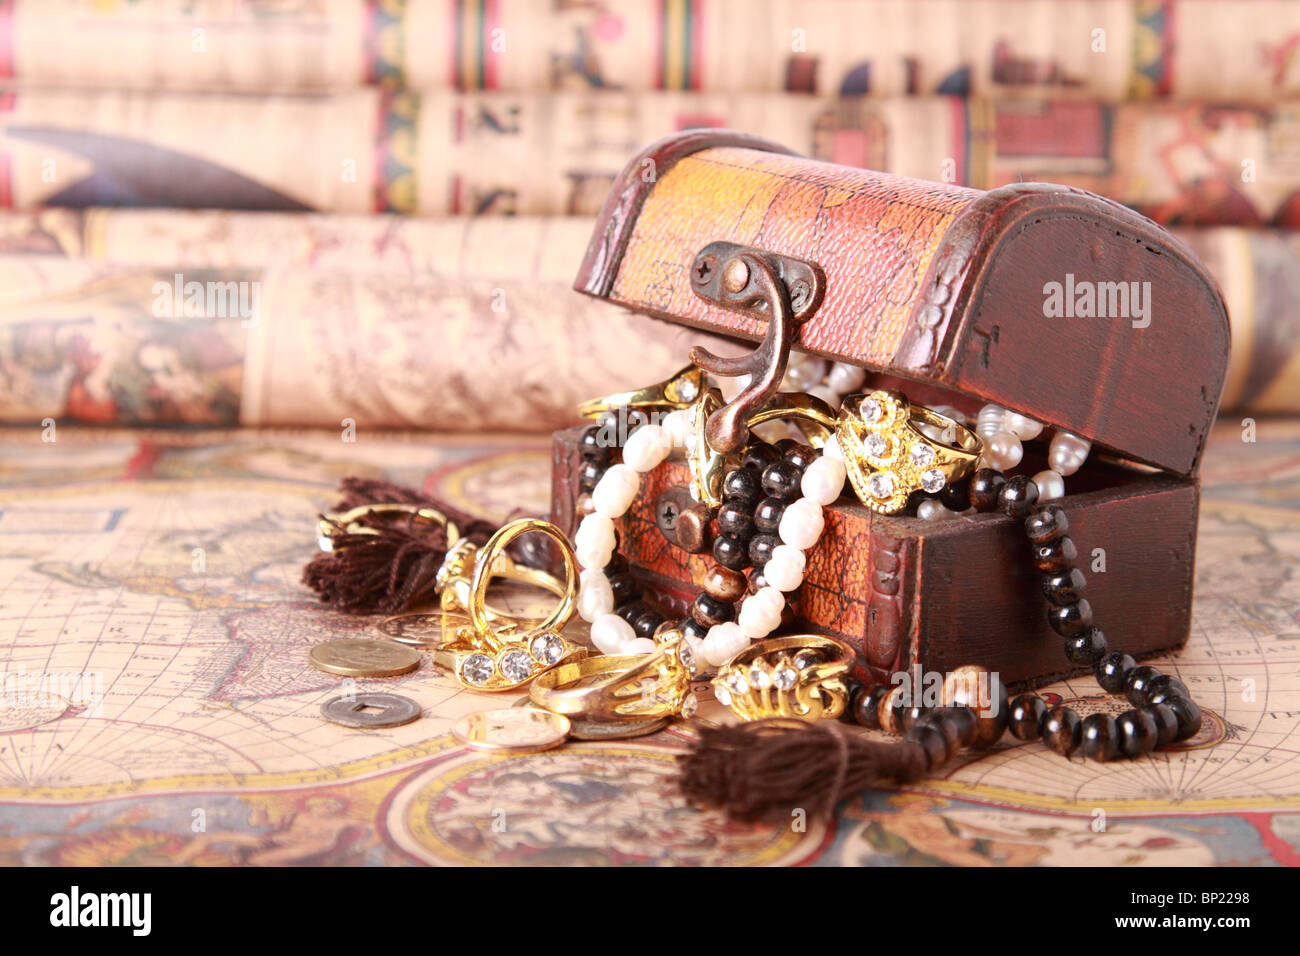 Antique chest with jewelry on vintage map - Stock Image